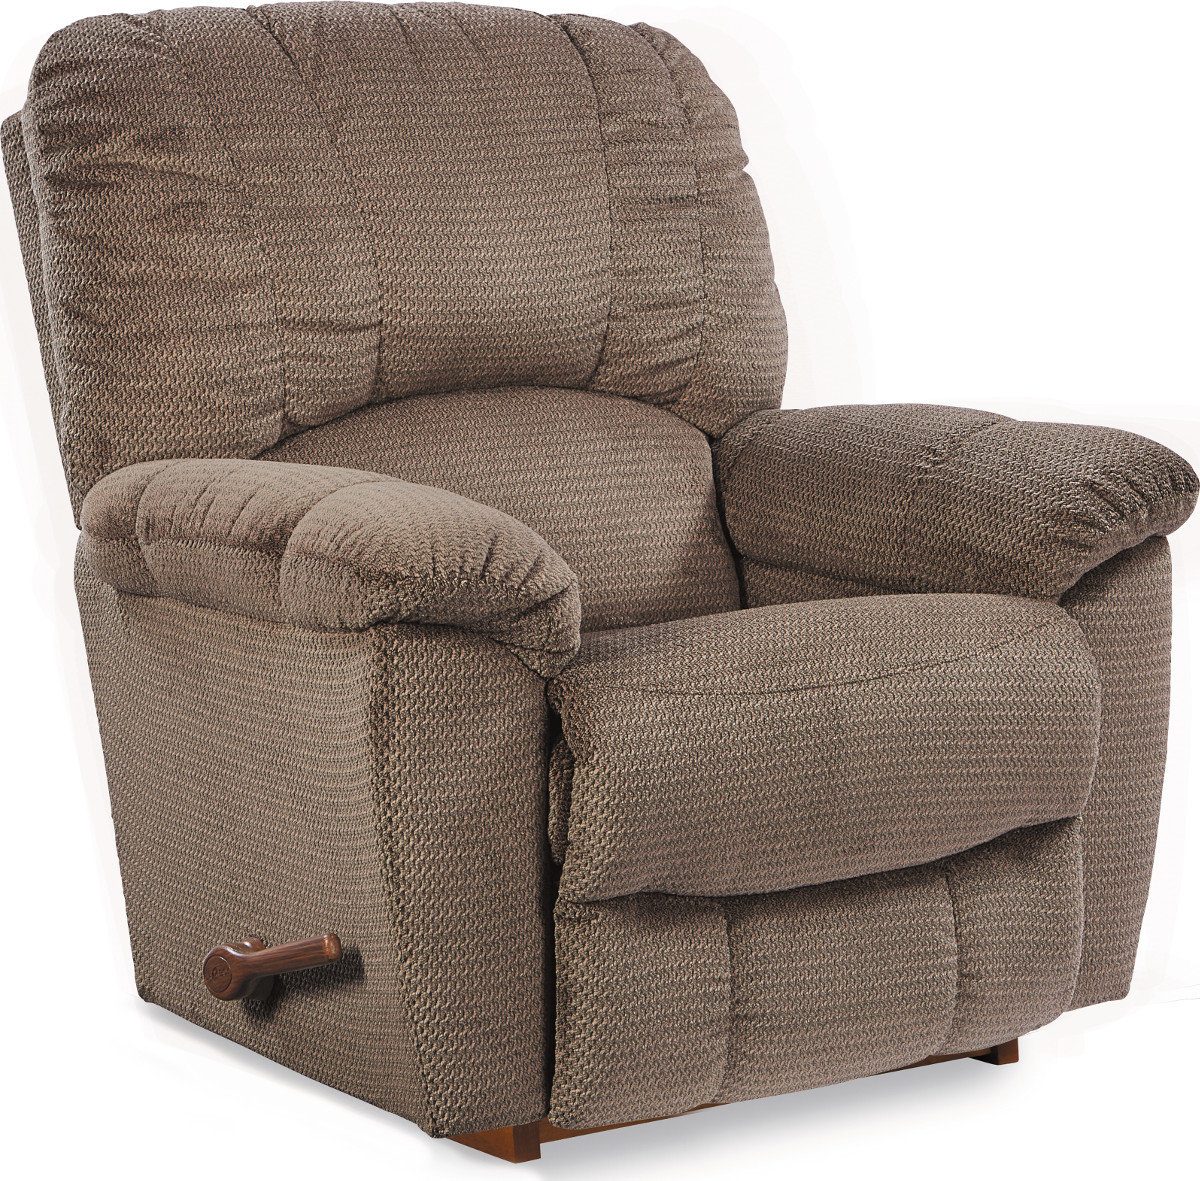 La Z Boy Hayes Rocker Recliner & Reviews | Wayfair Within Gibson Swivel Cuddler Chairs (View 4 of 20)